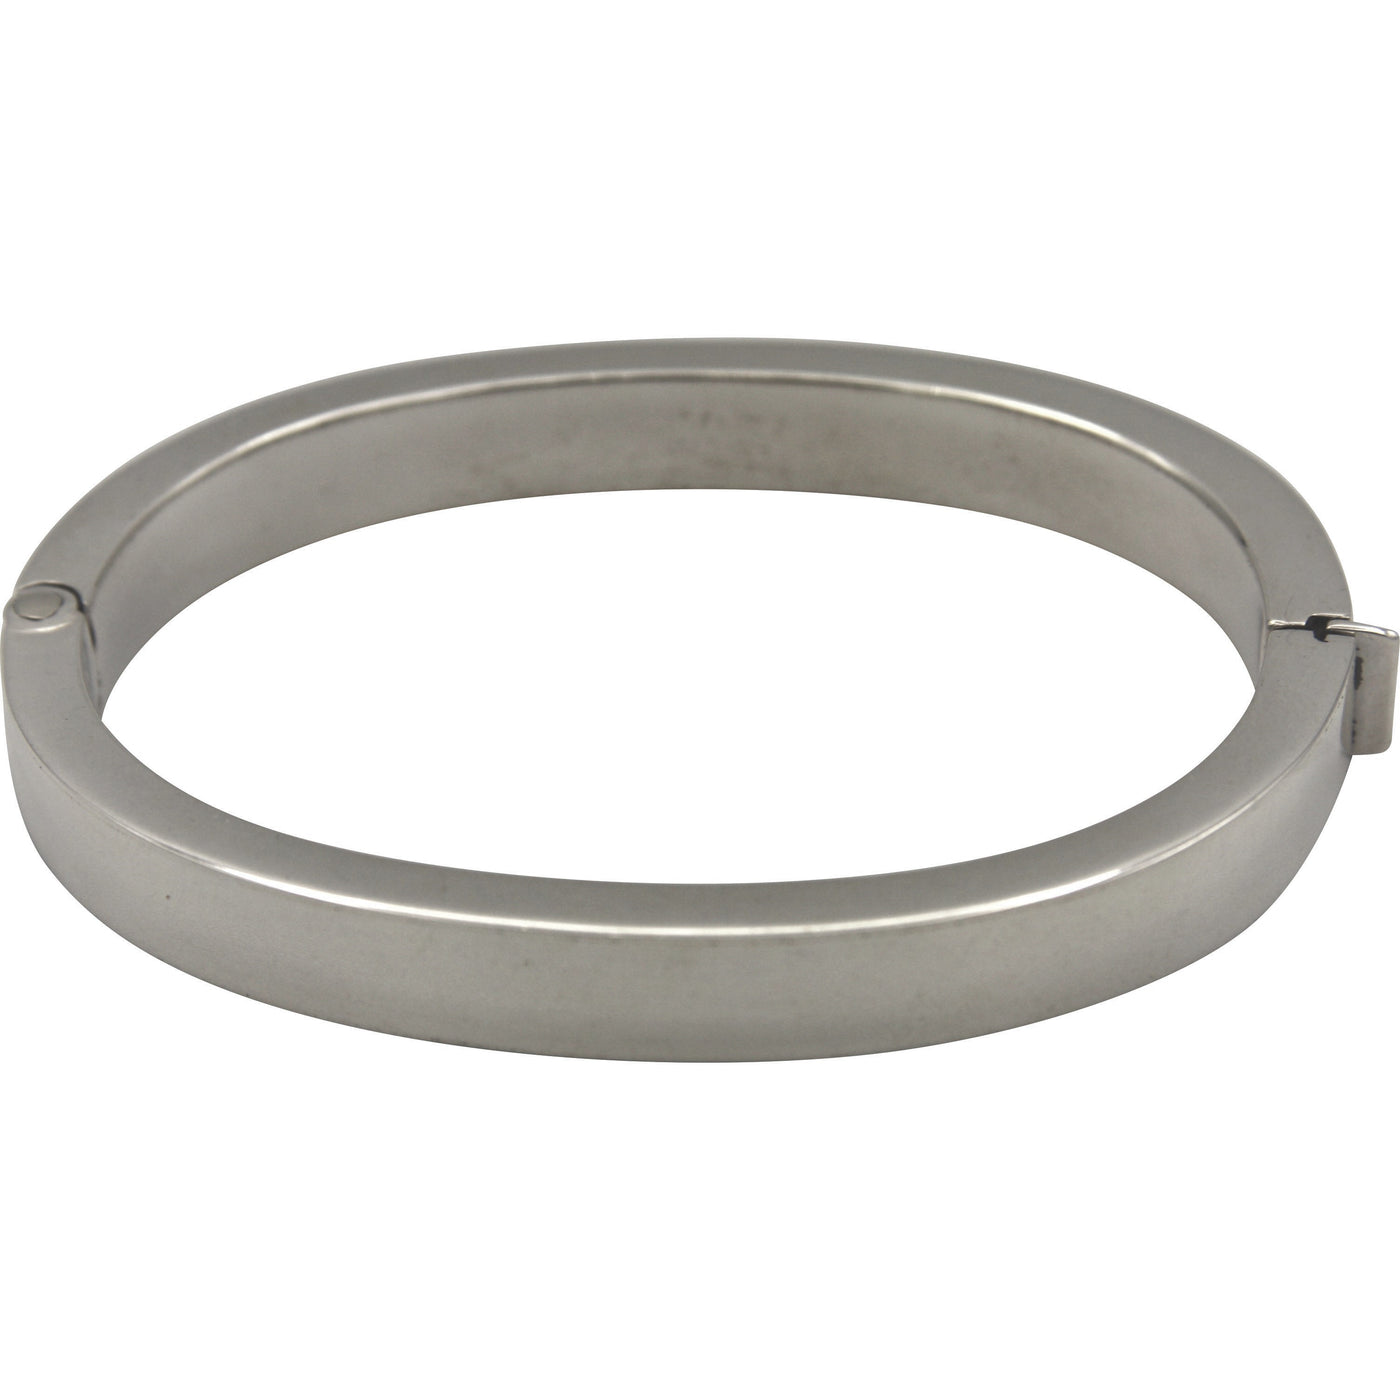 Sterling Silver Oval Hinged Bangle Bracelet